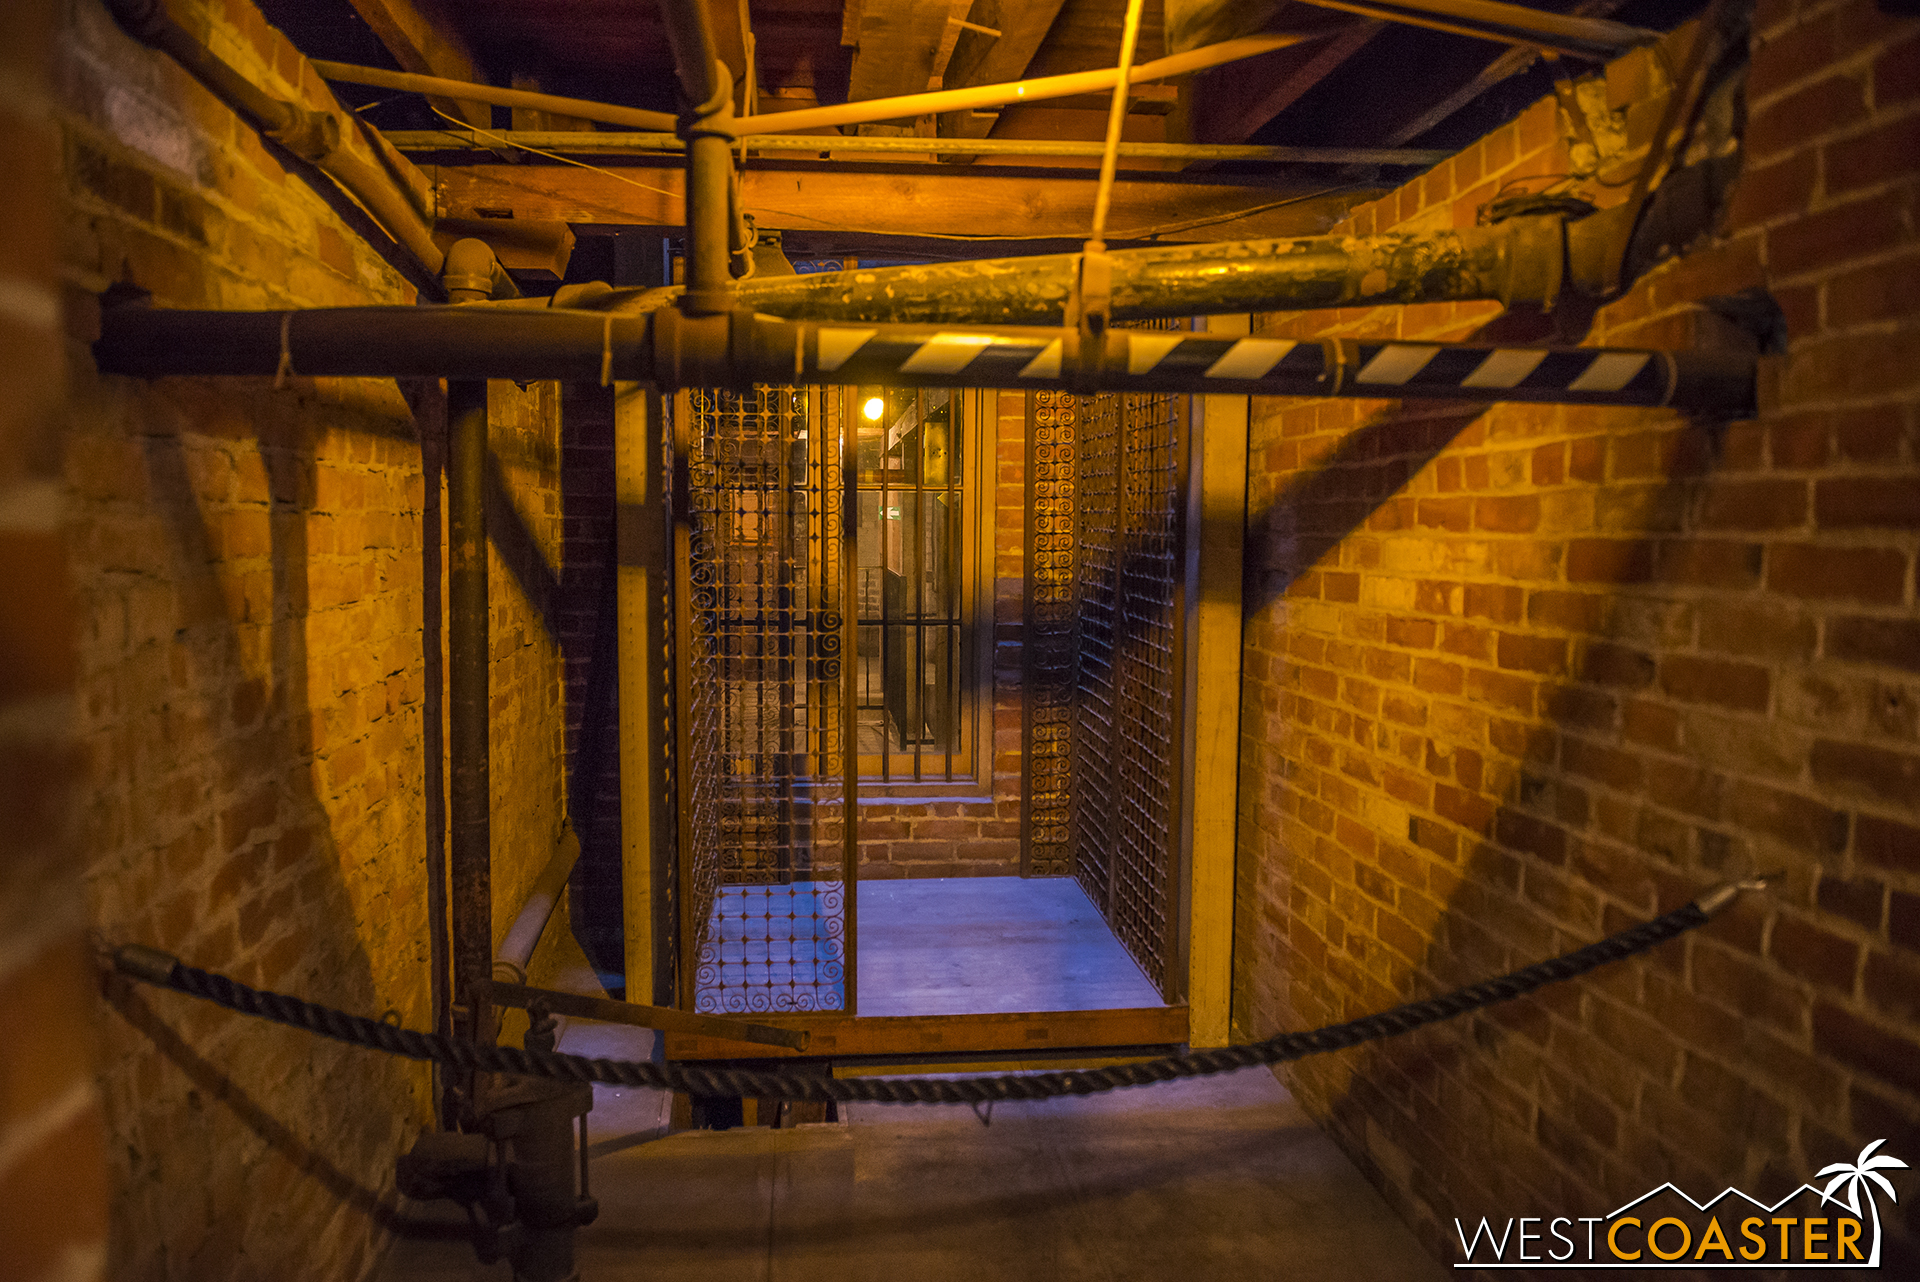 A trip through the basement passes by one of the house's elevators--now no longer in use.